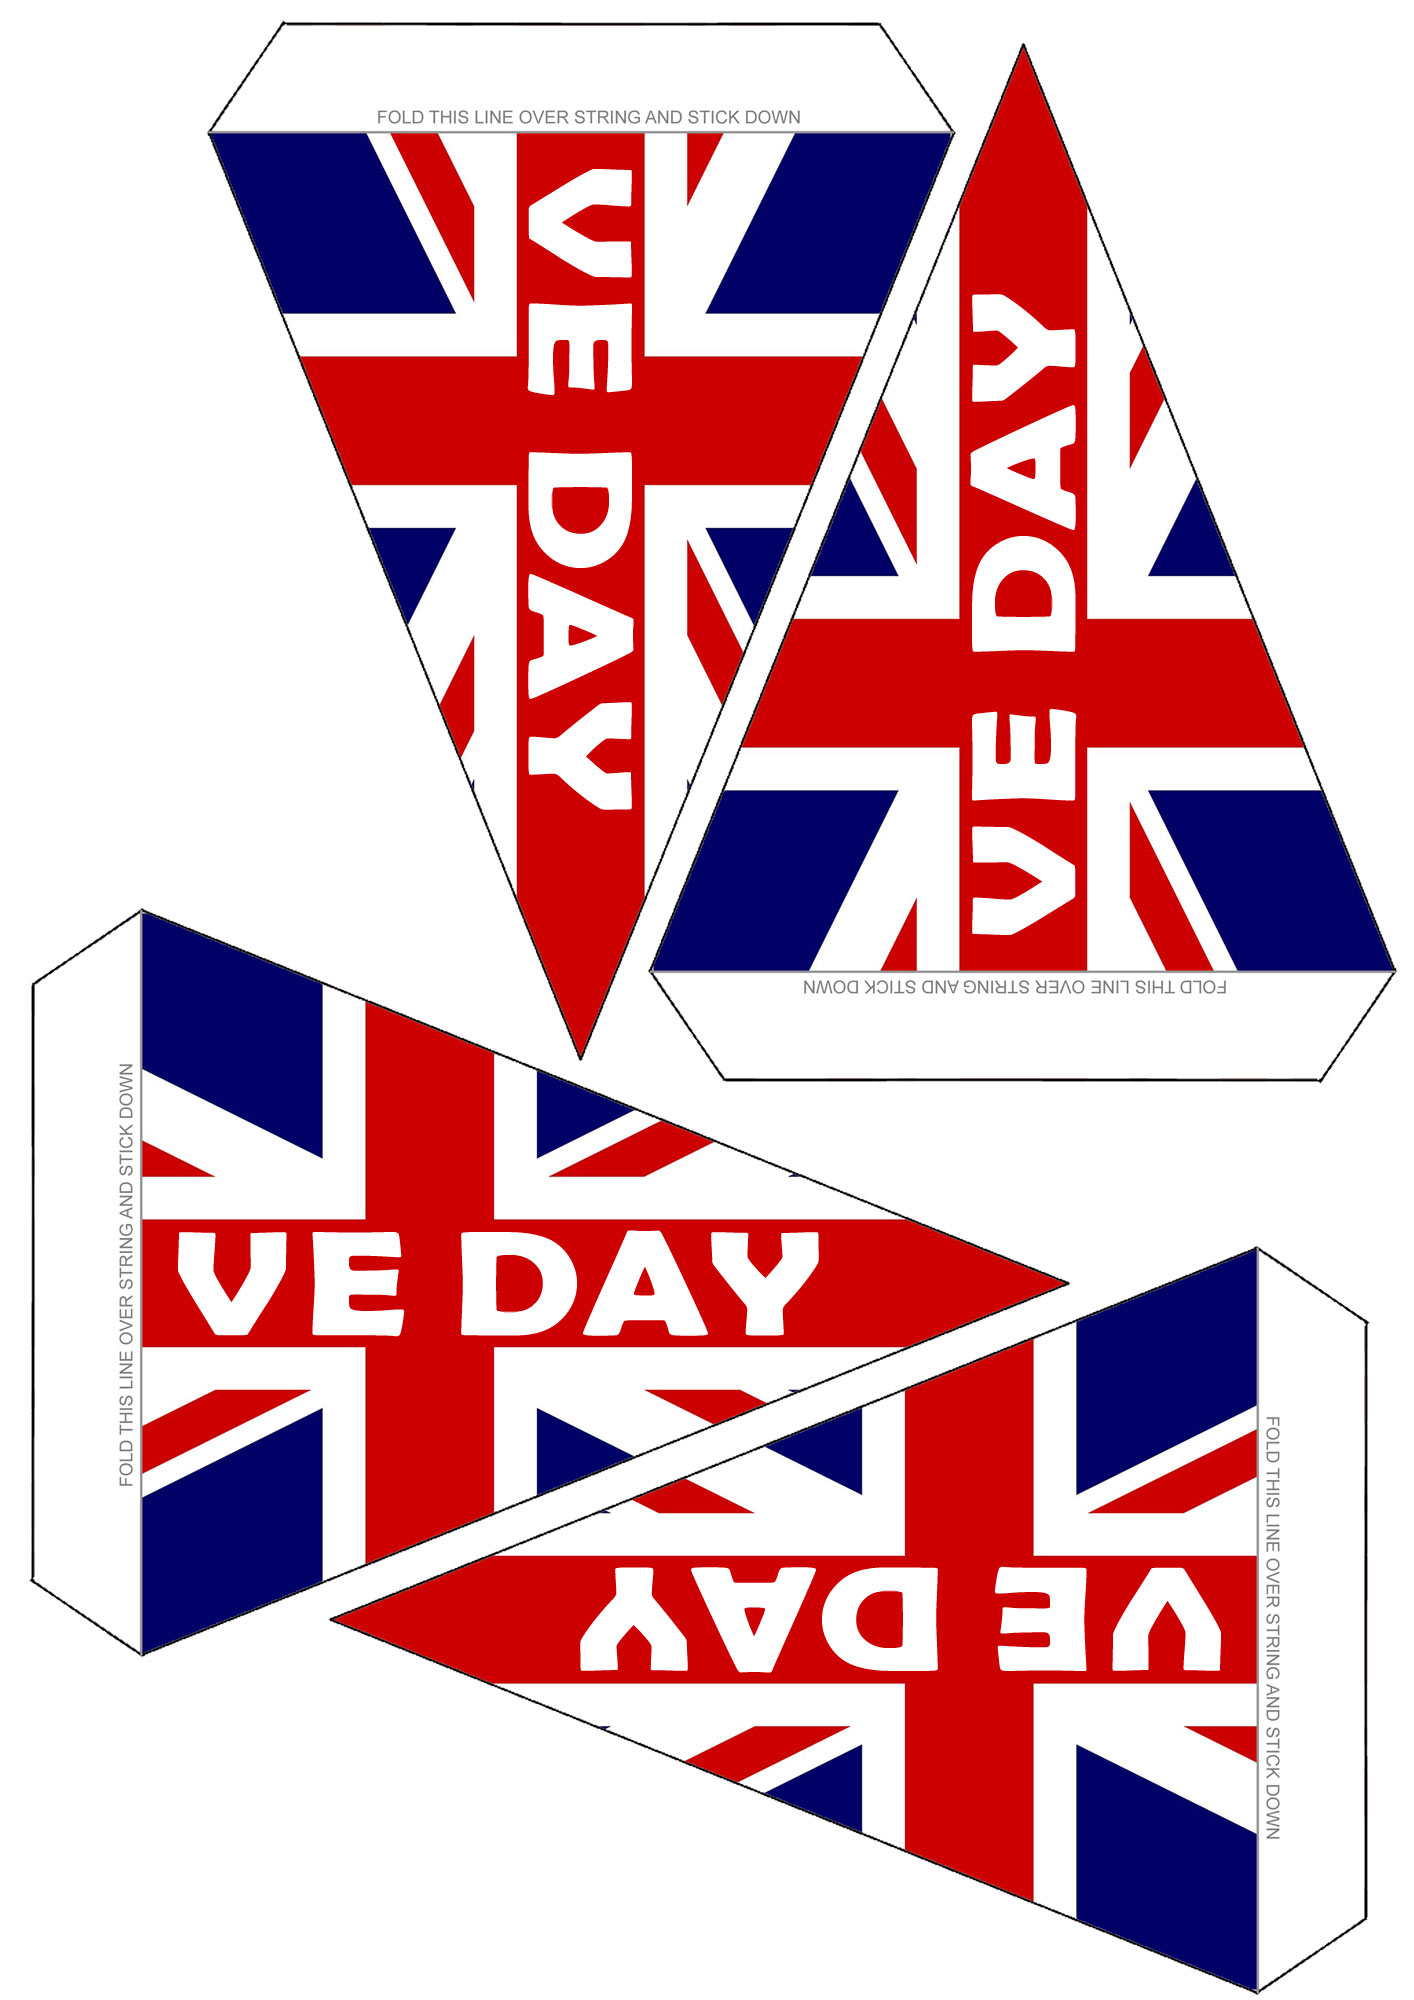 Printable sheet of VE Day Bunting